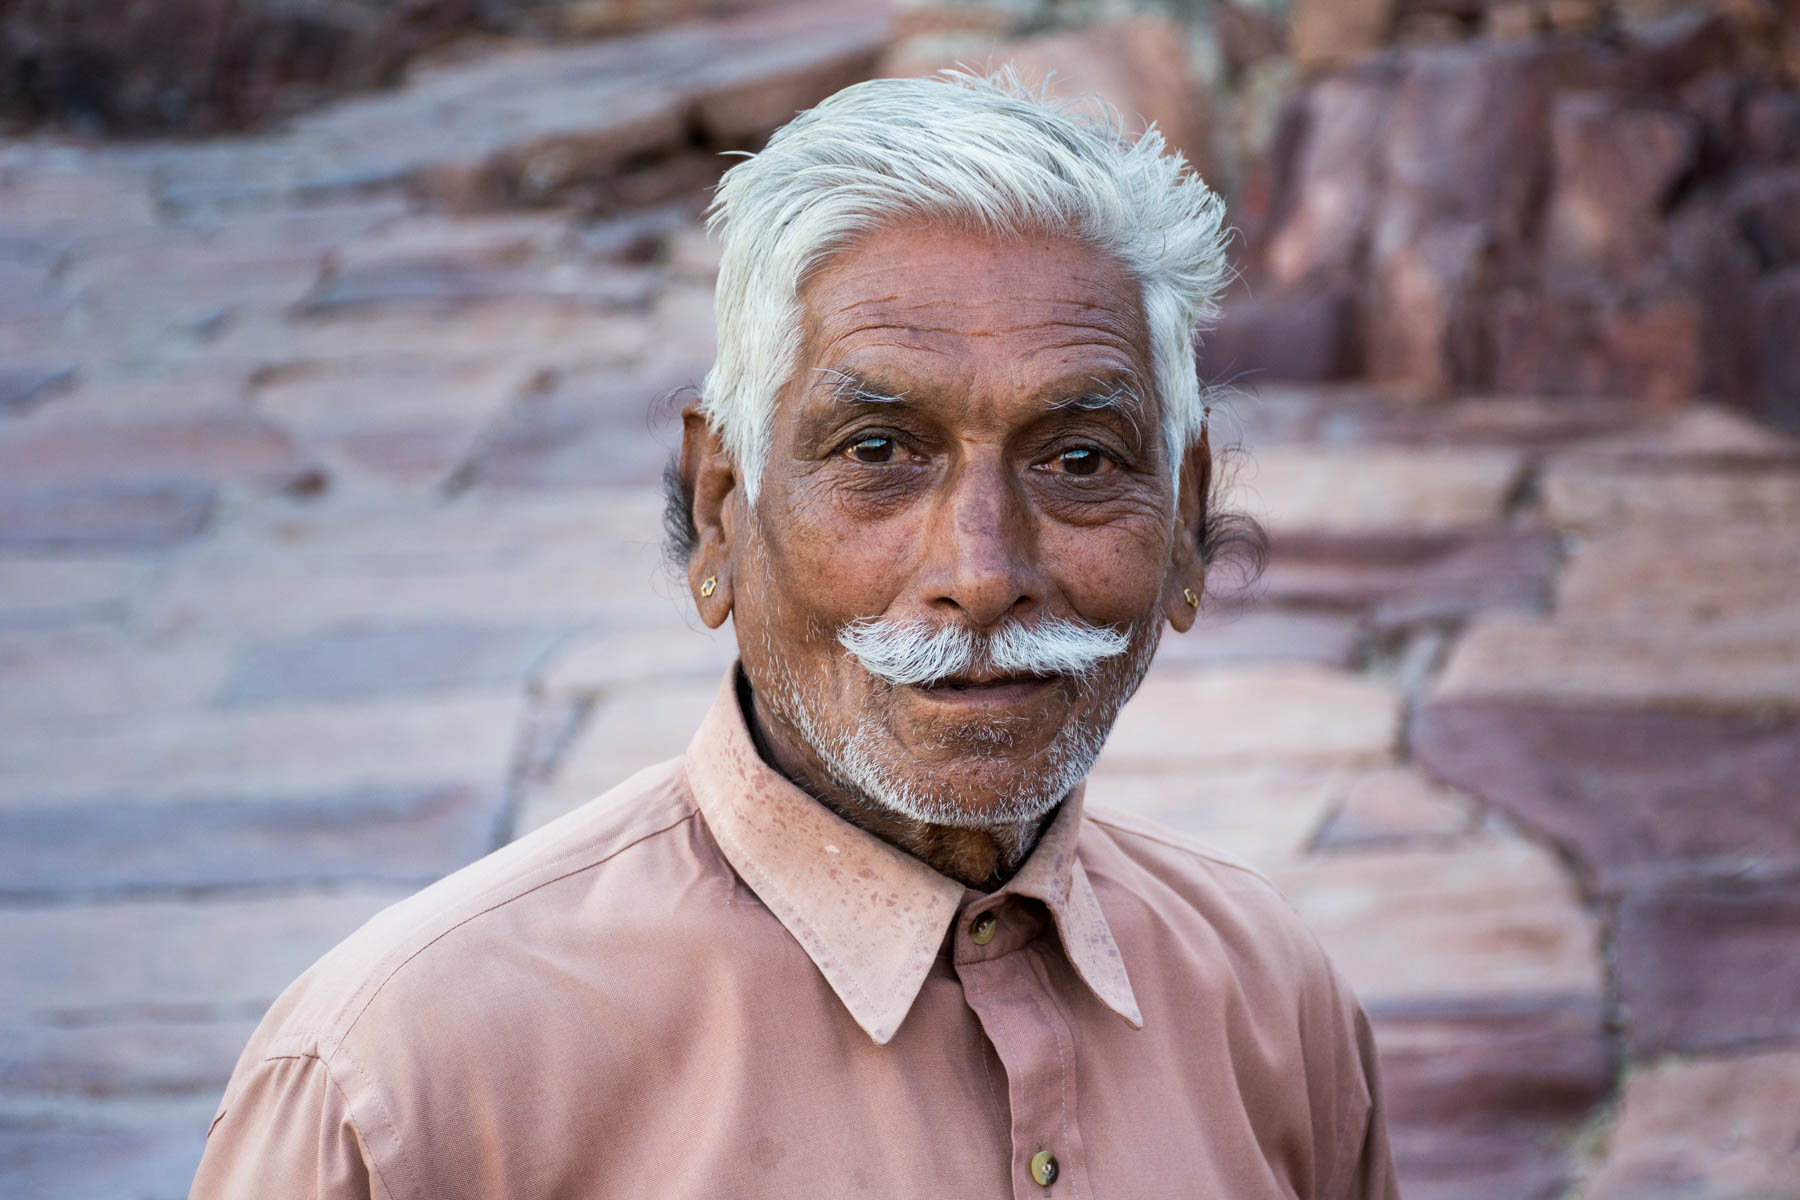 Mustached man in Jodhpur